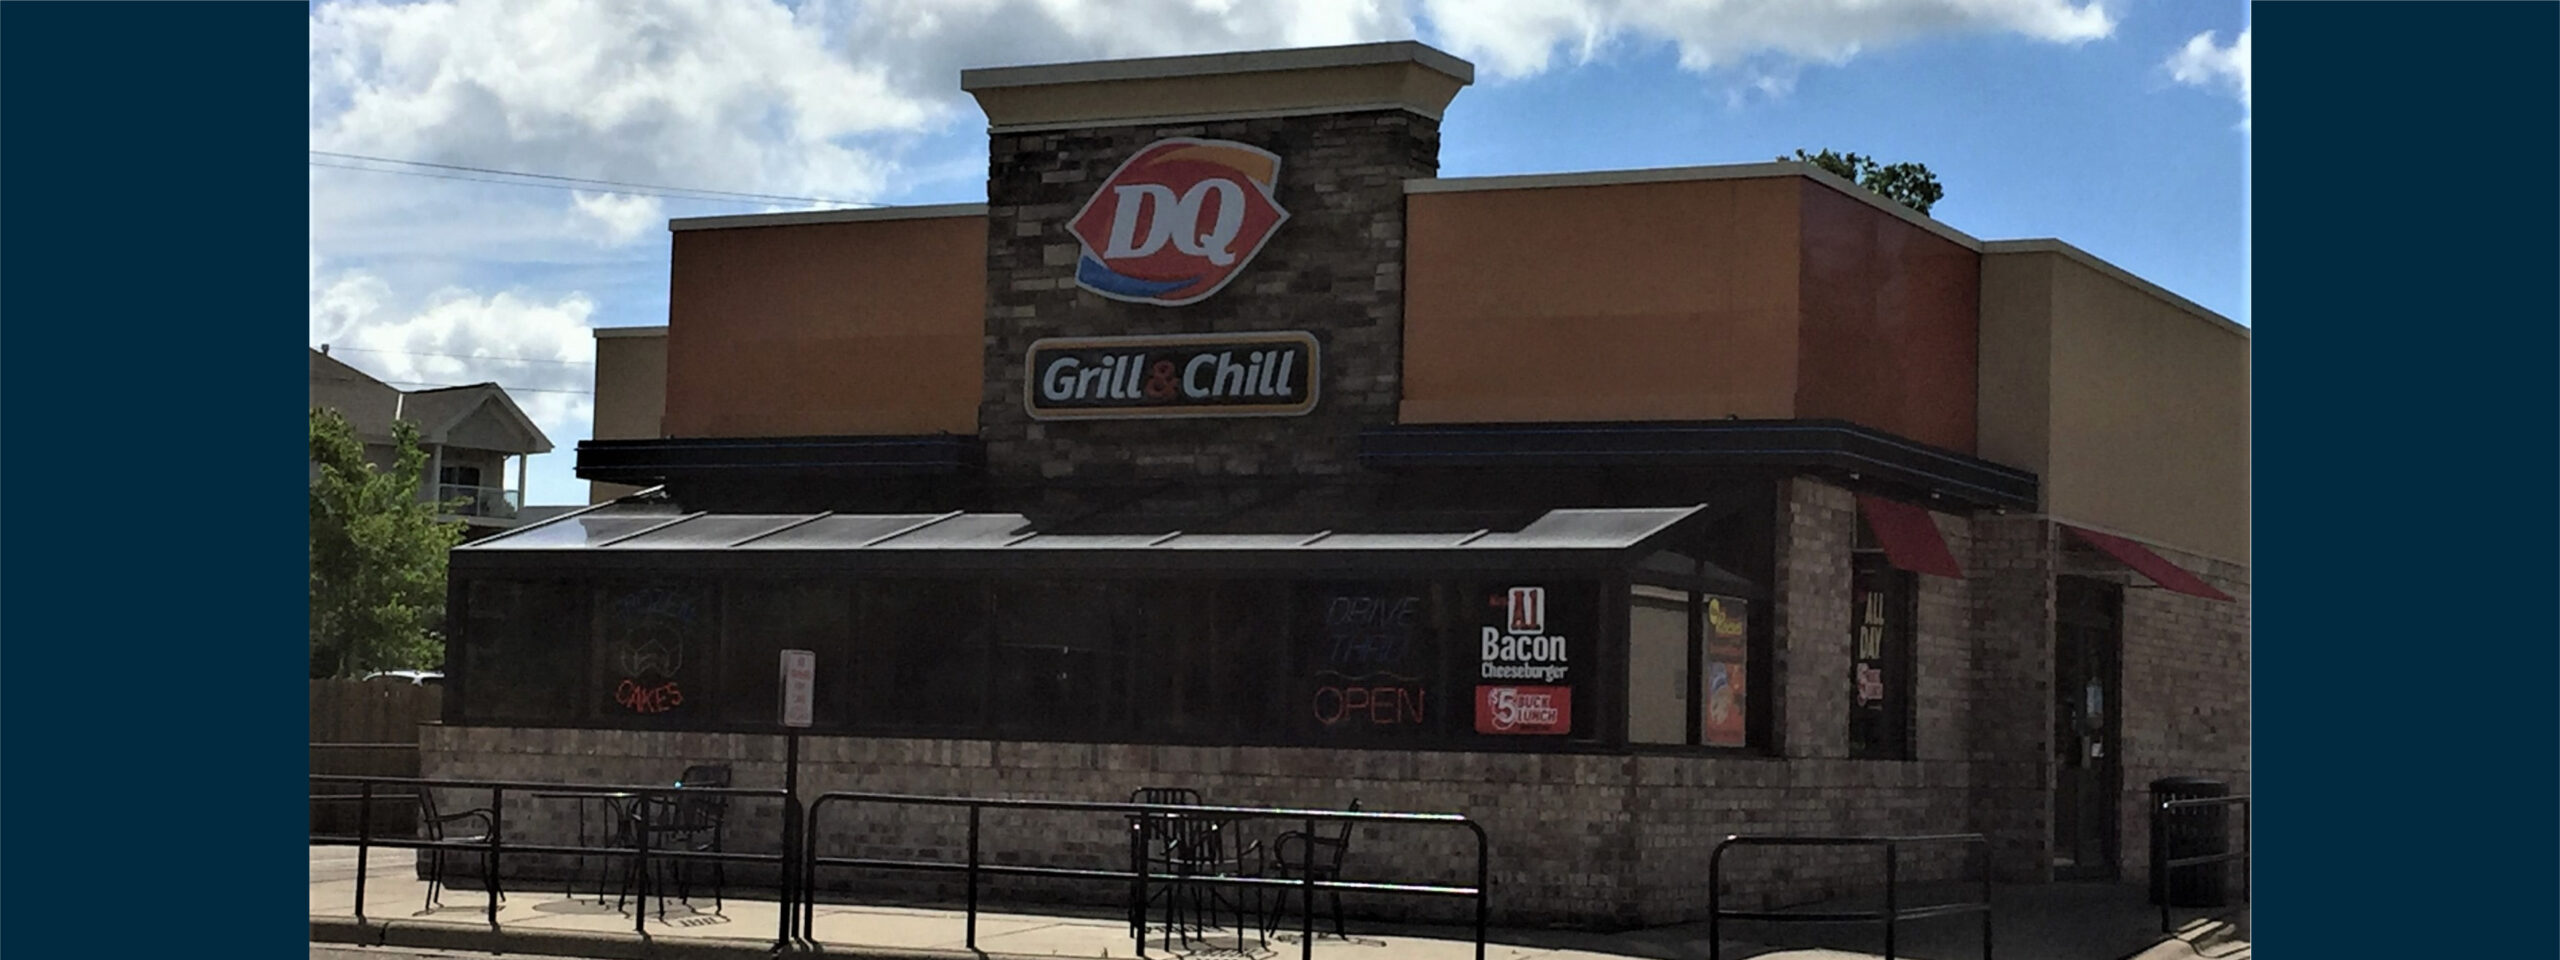 Bloomington, MN Fourteen Foods DQ Restaurant